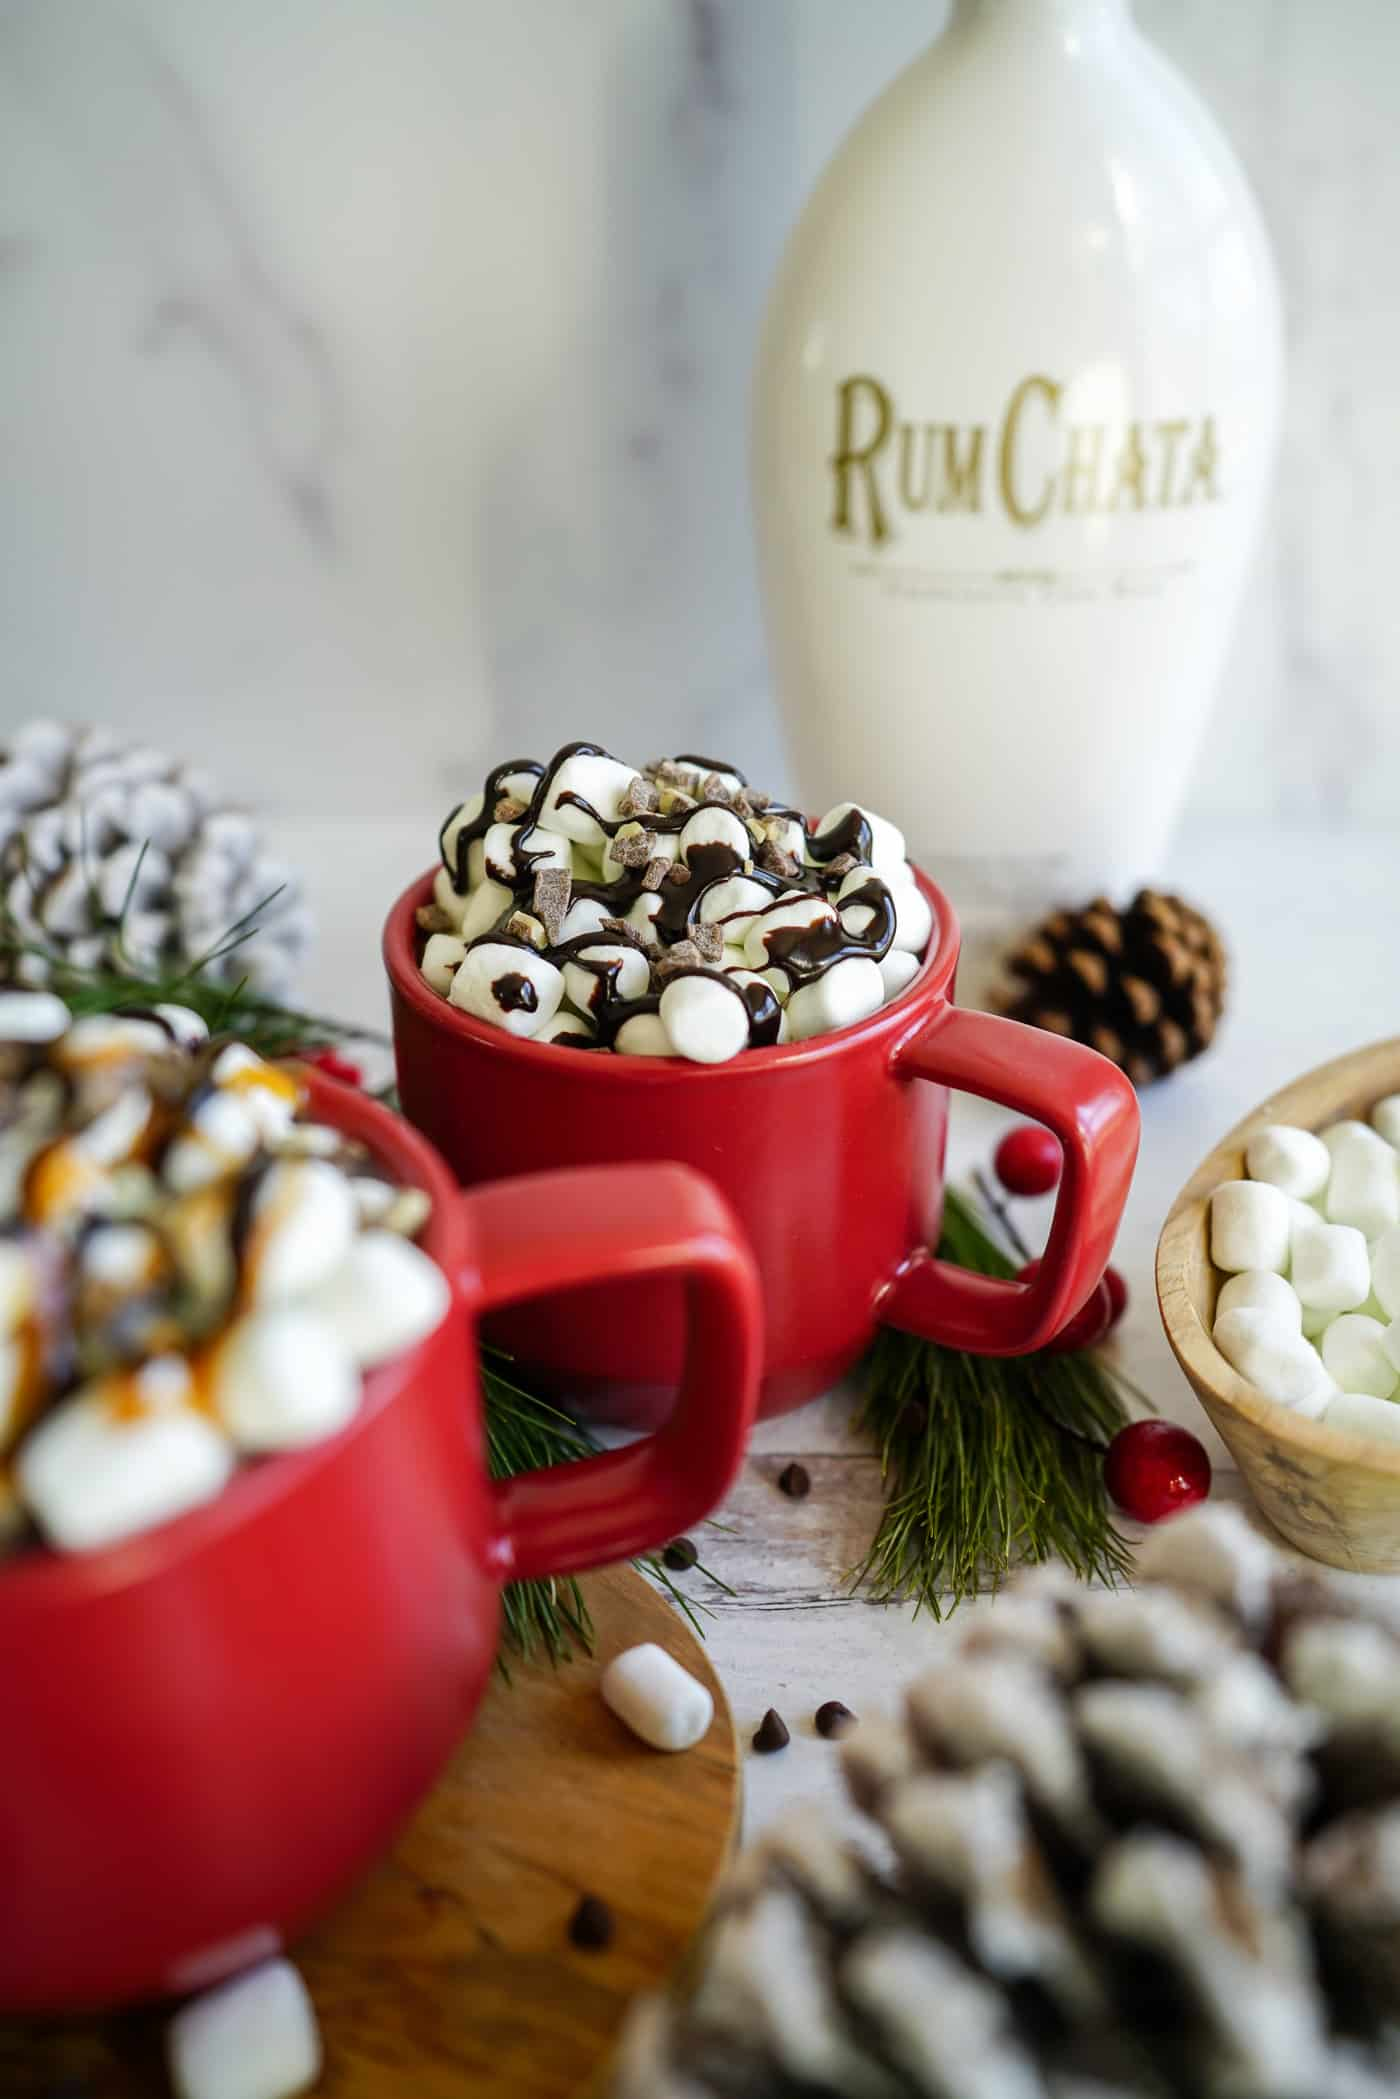 A red coffee mug filled wtih rumchata hot chocolate topped with marshmalloed and chocolate sauce